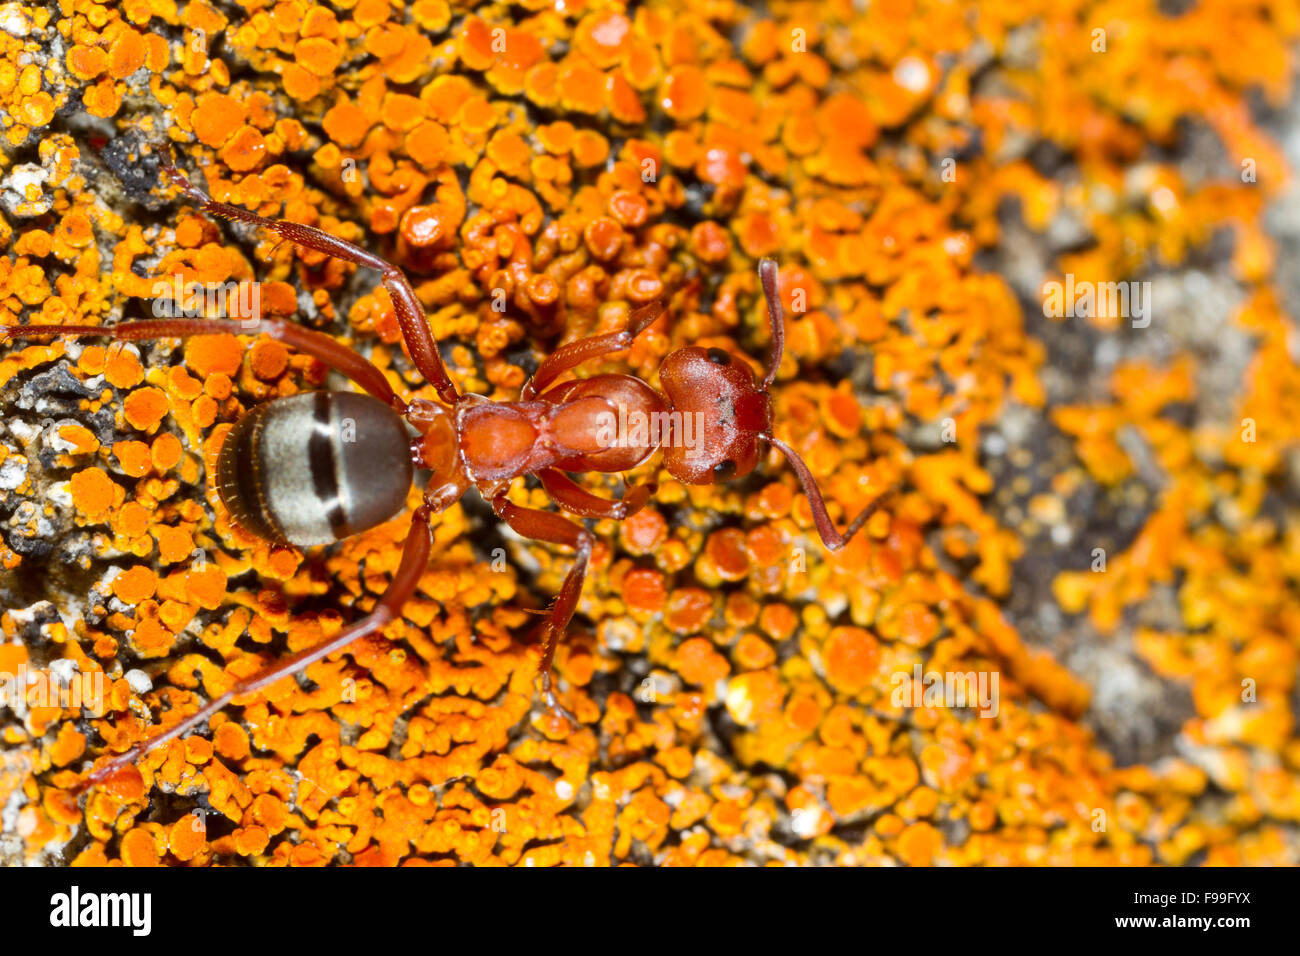 ant workers stockfotos ant workers bilder alamy. Black Bedroom Furniture Sets. Home Design Ideas